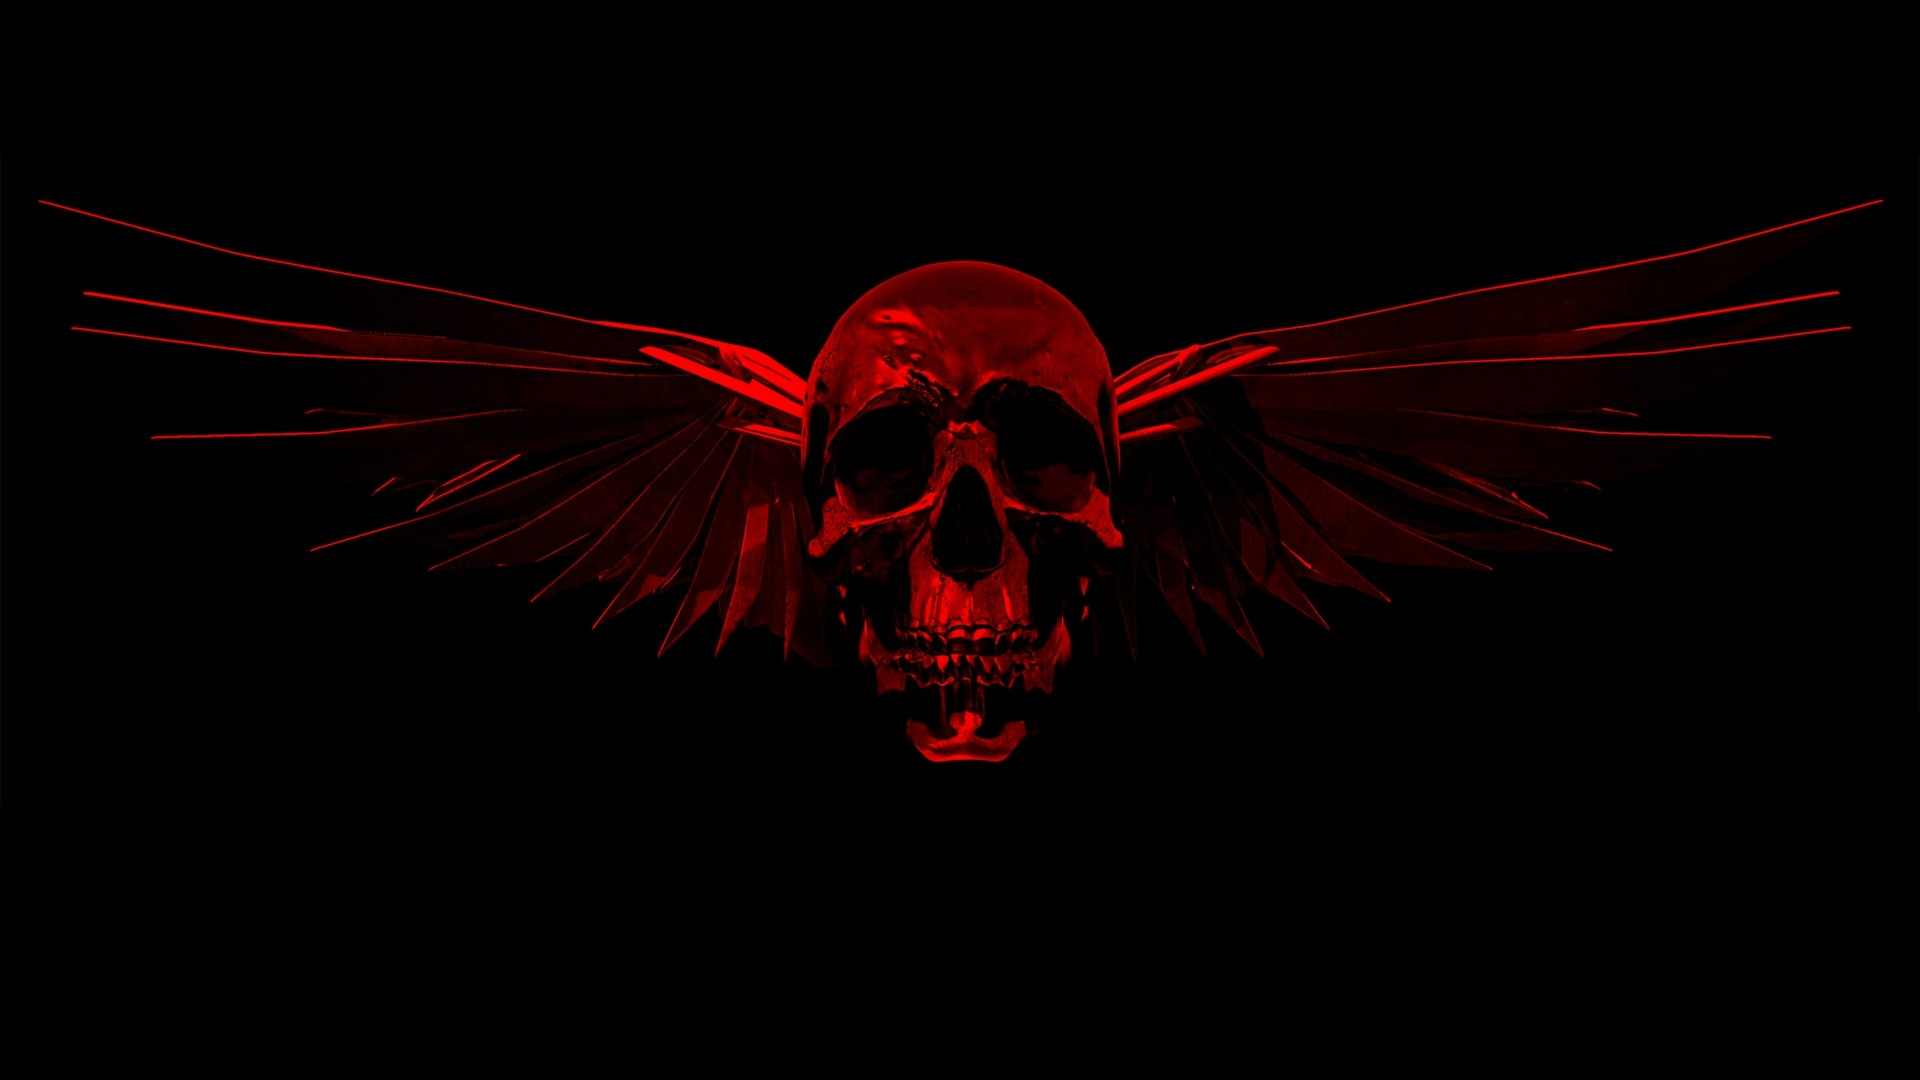 Flaming Skull Wallpapers (50+ Images